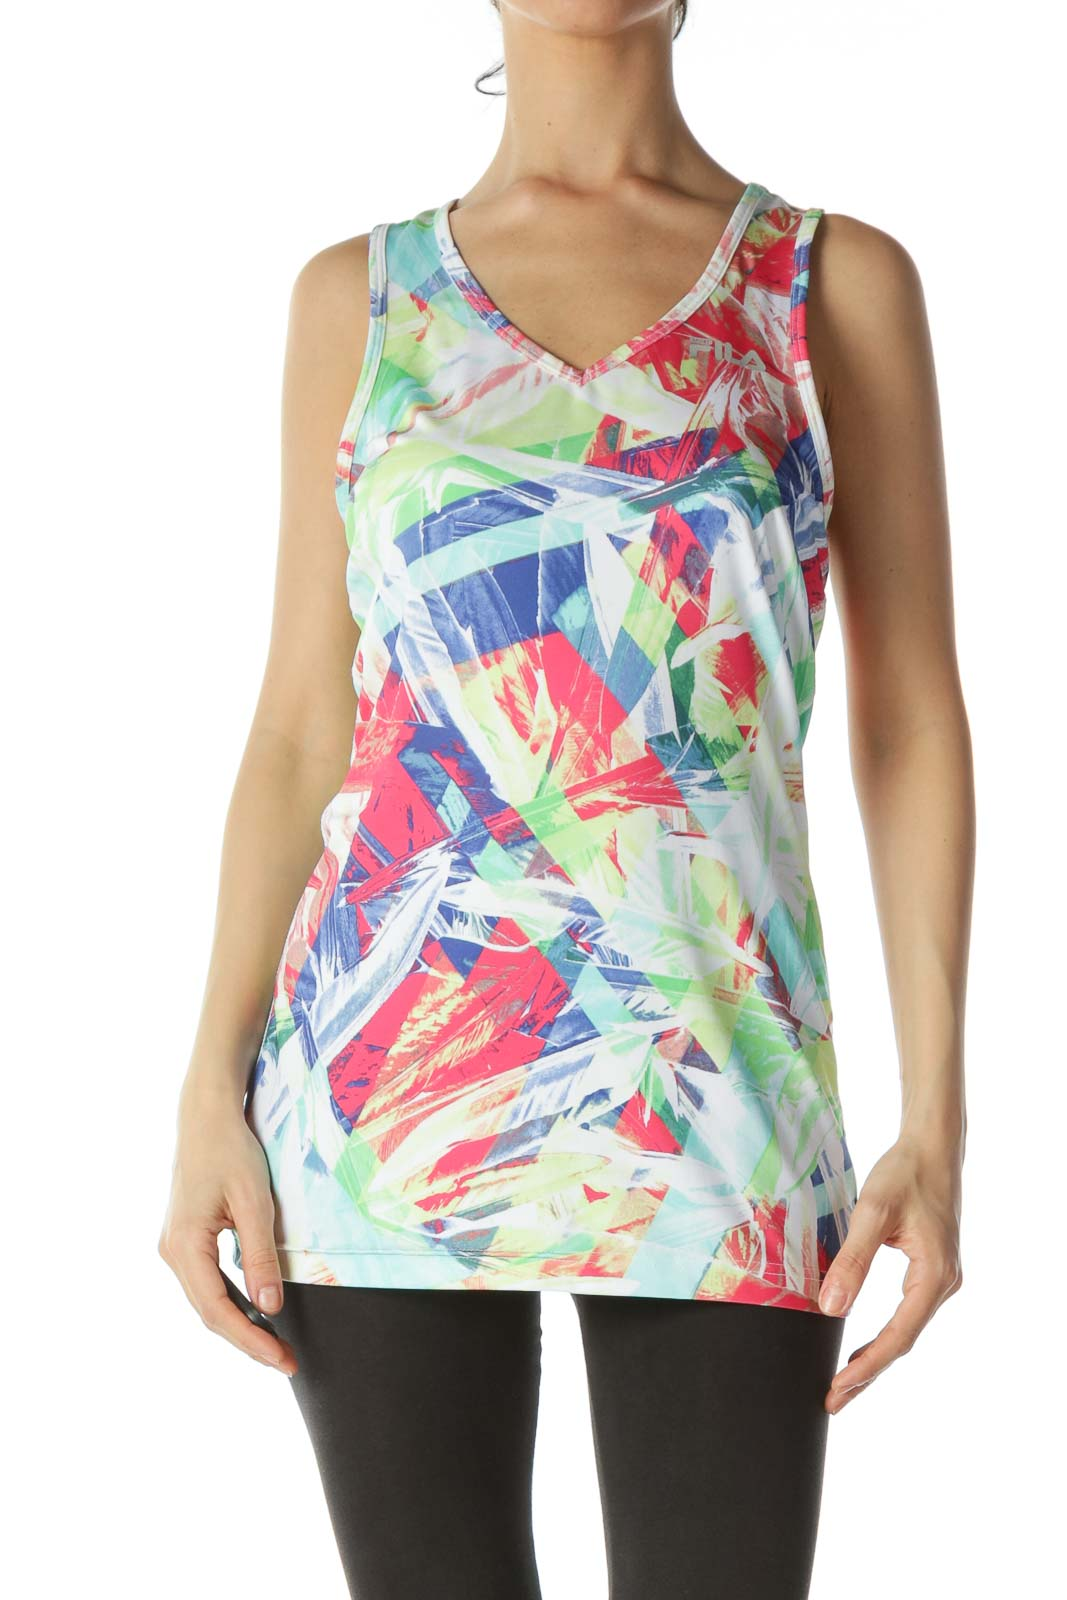 Multicolor Patterned Athletic Tank Top Front